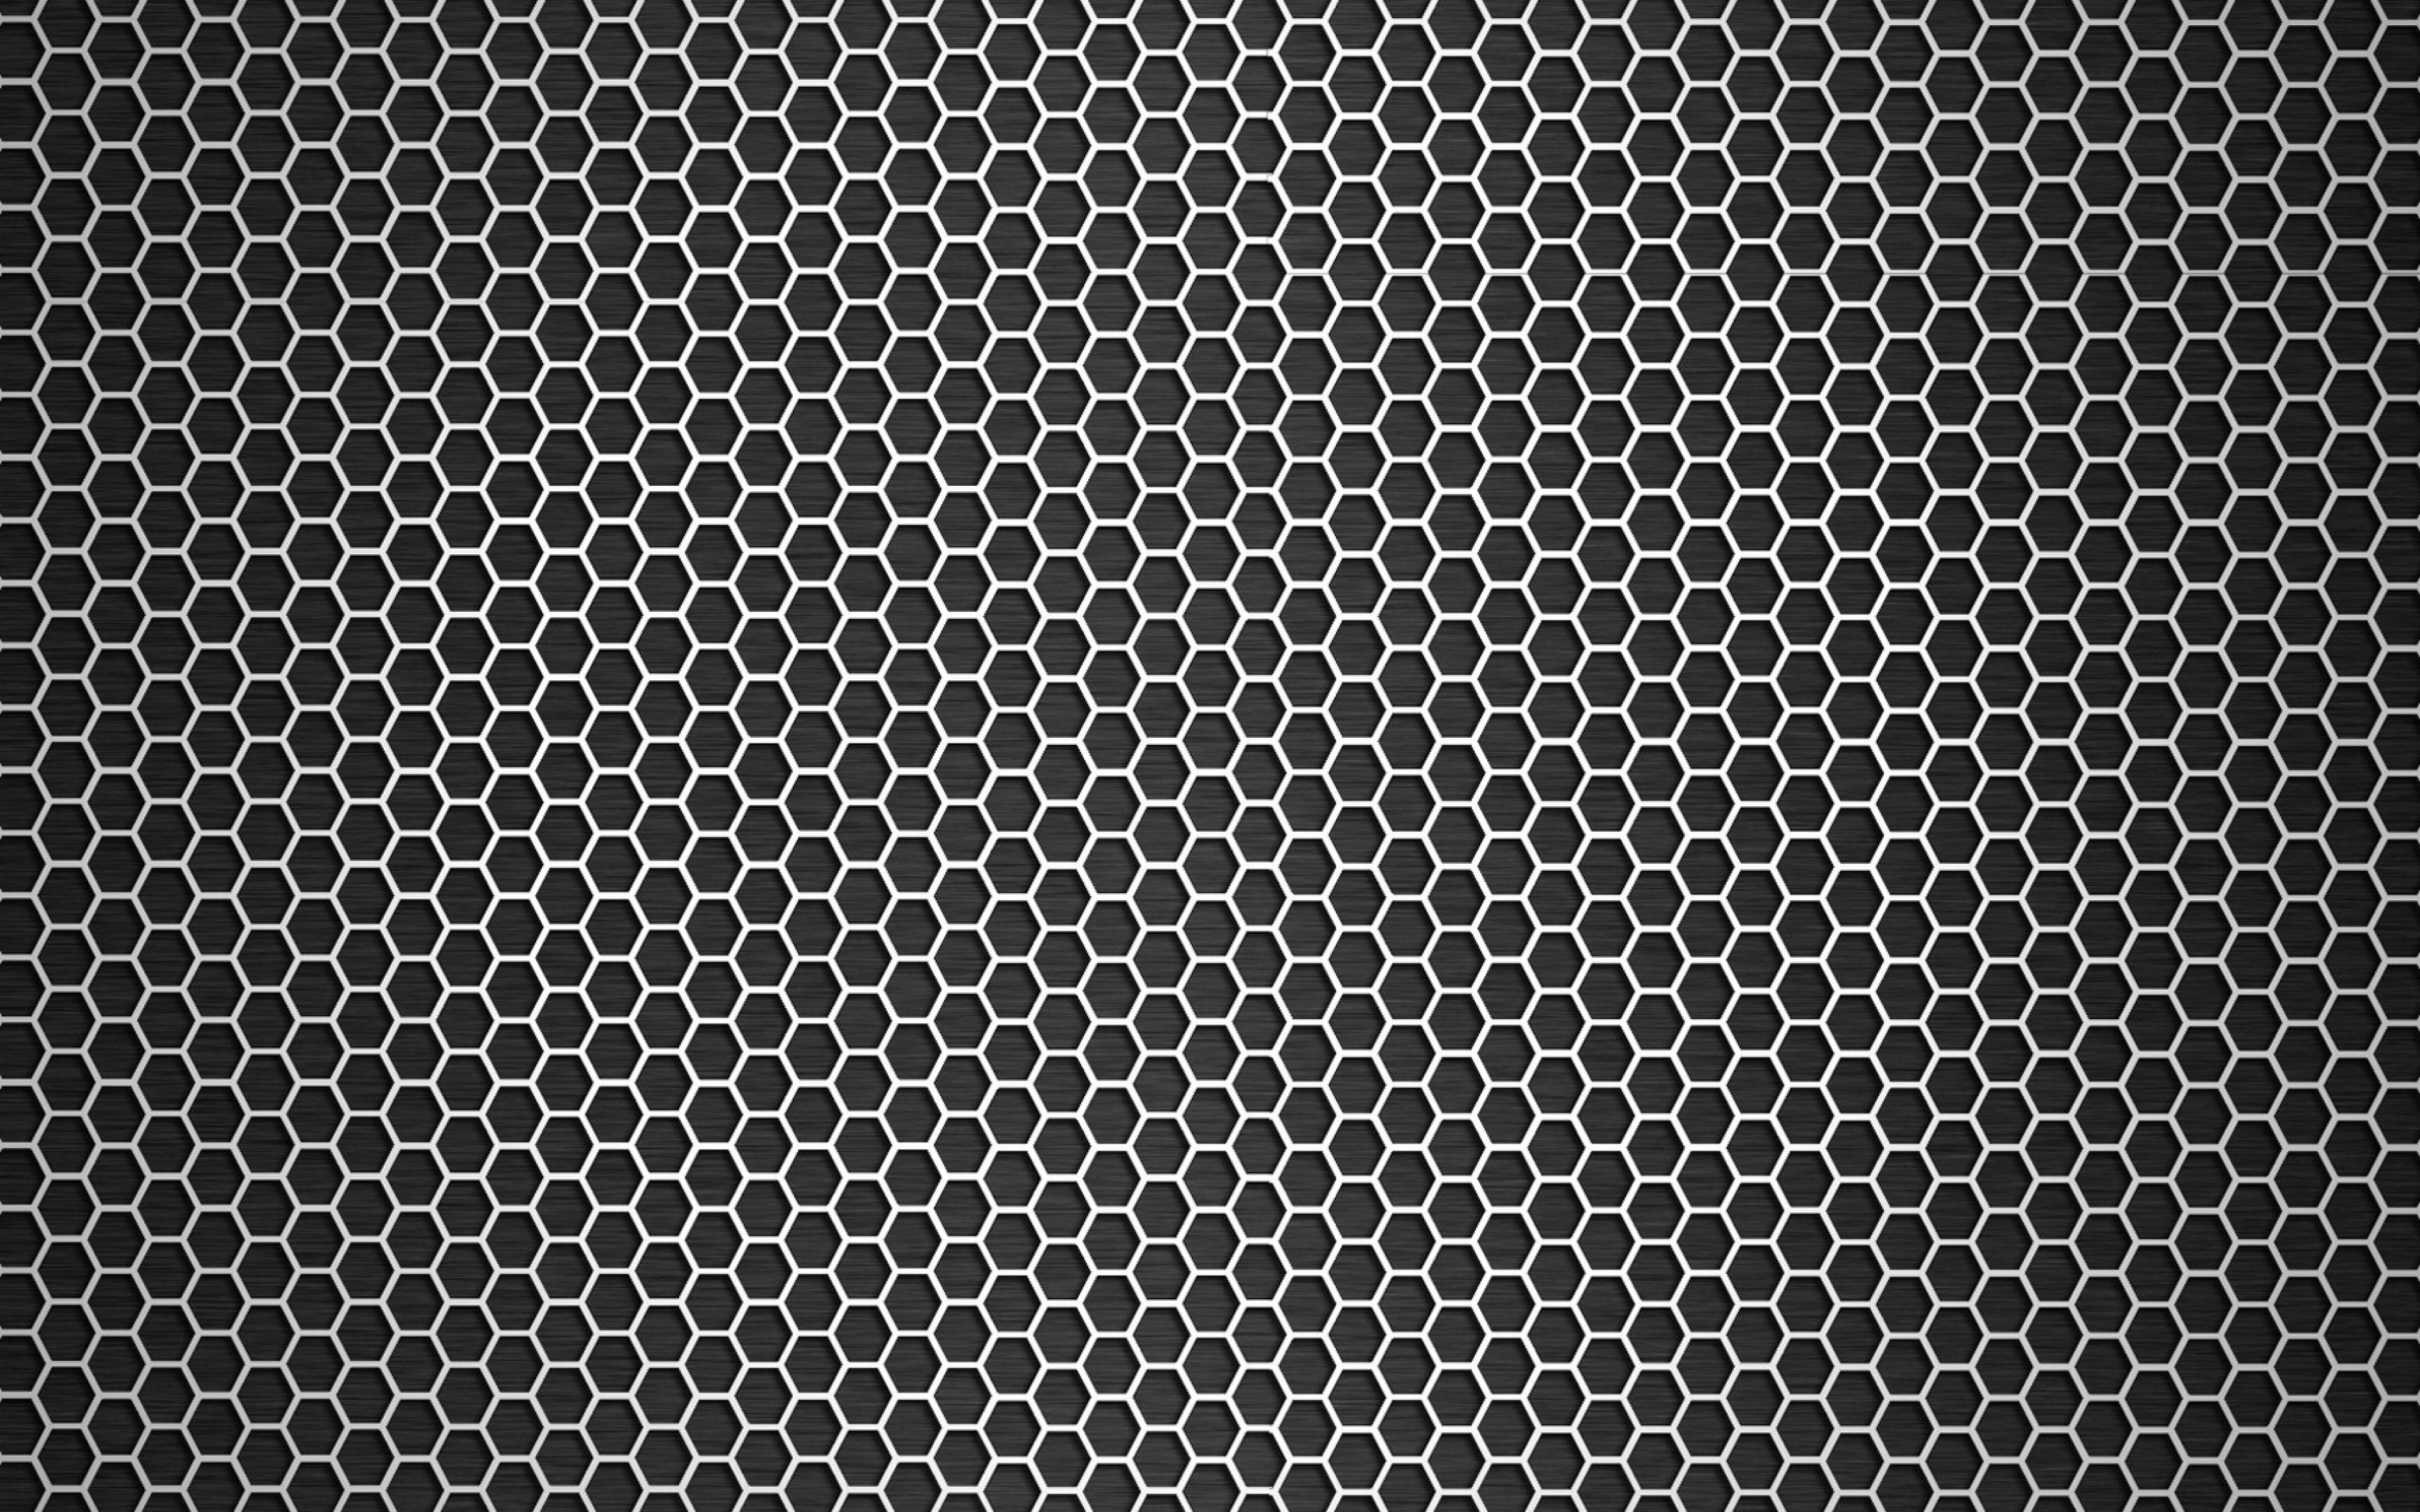 Grill Abstract Pattern Metal Wallpaper 3840x2400